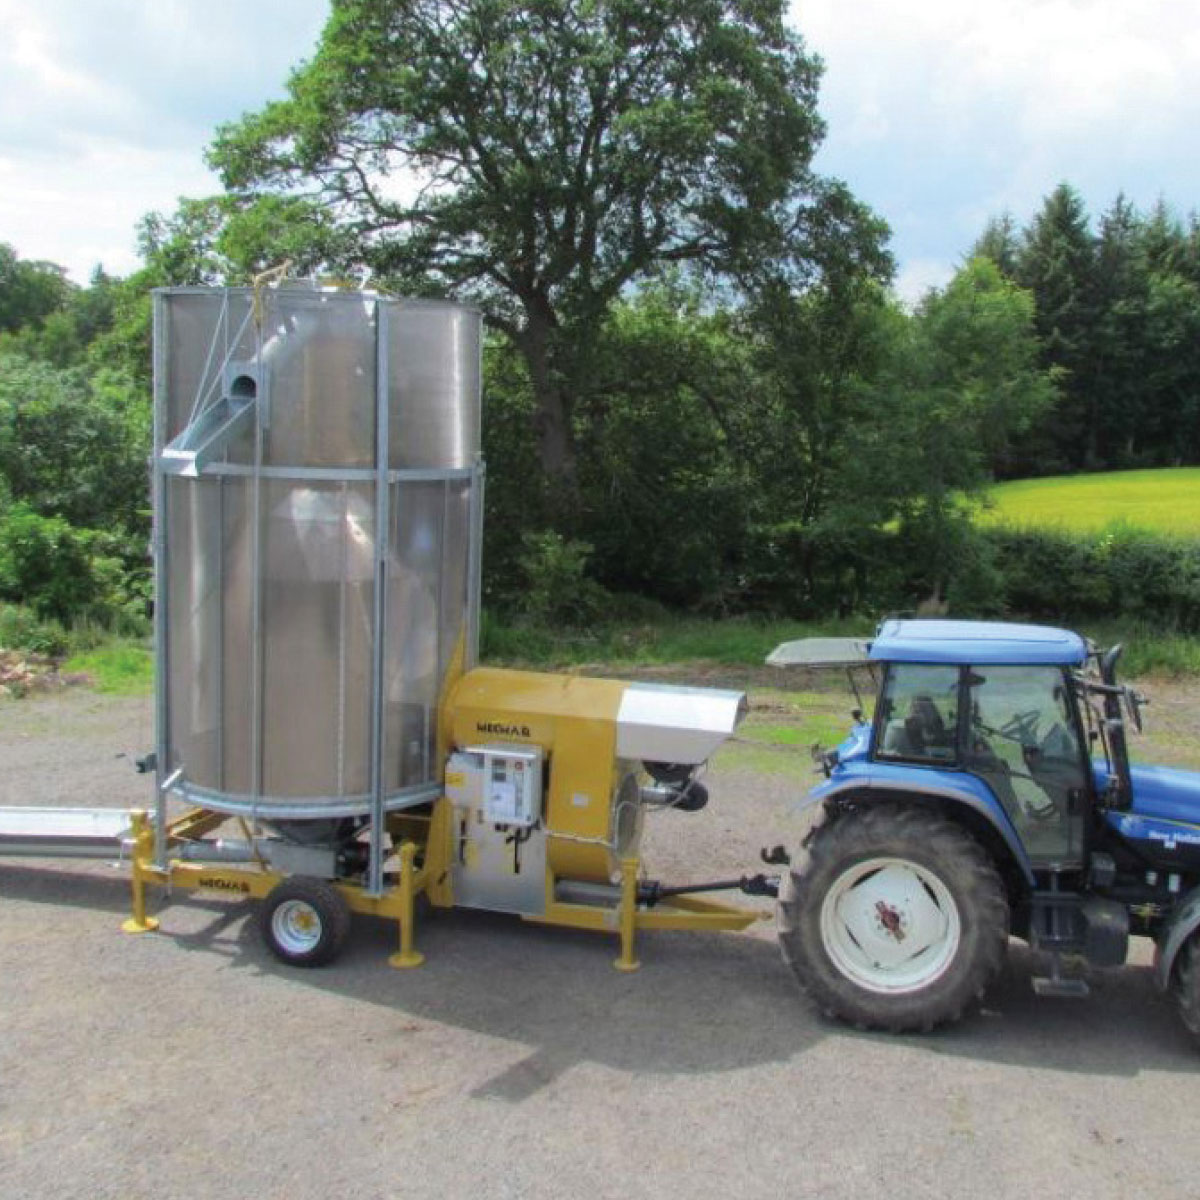 tractor pulling grain drier